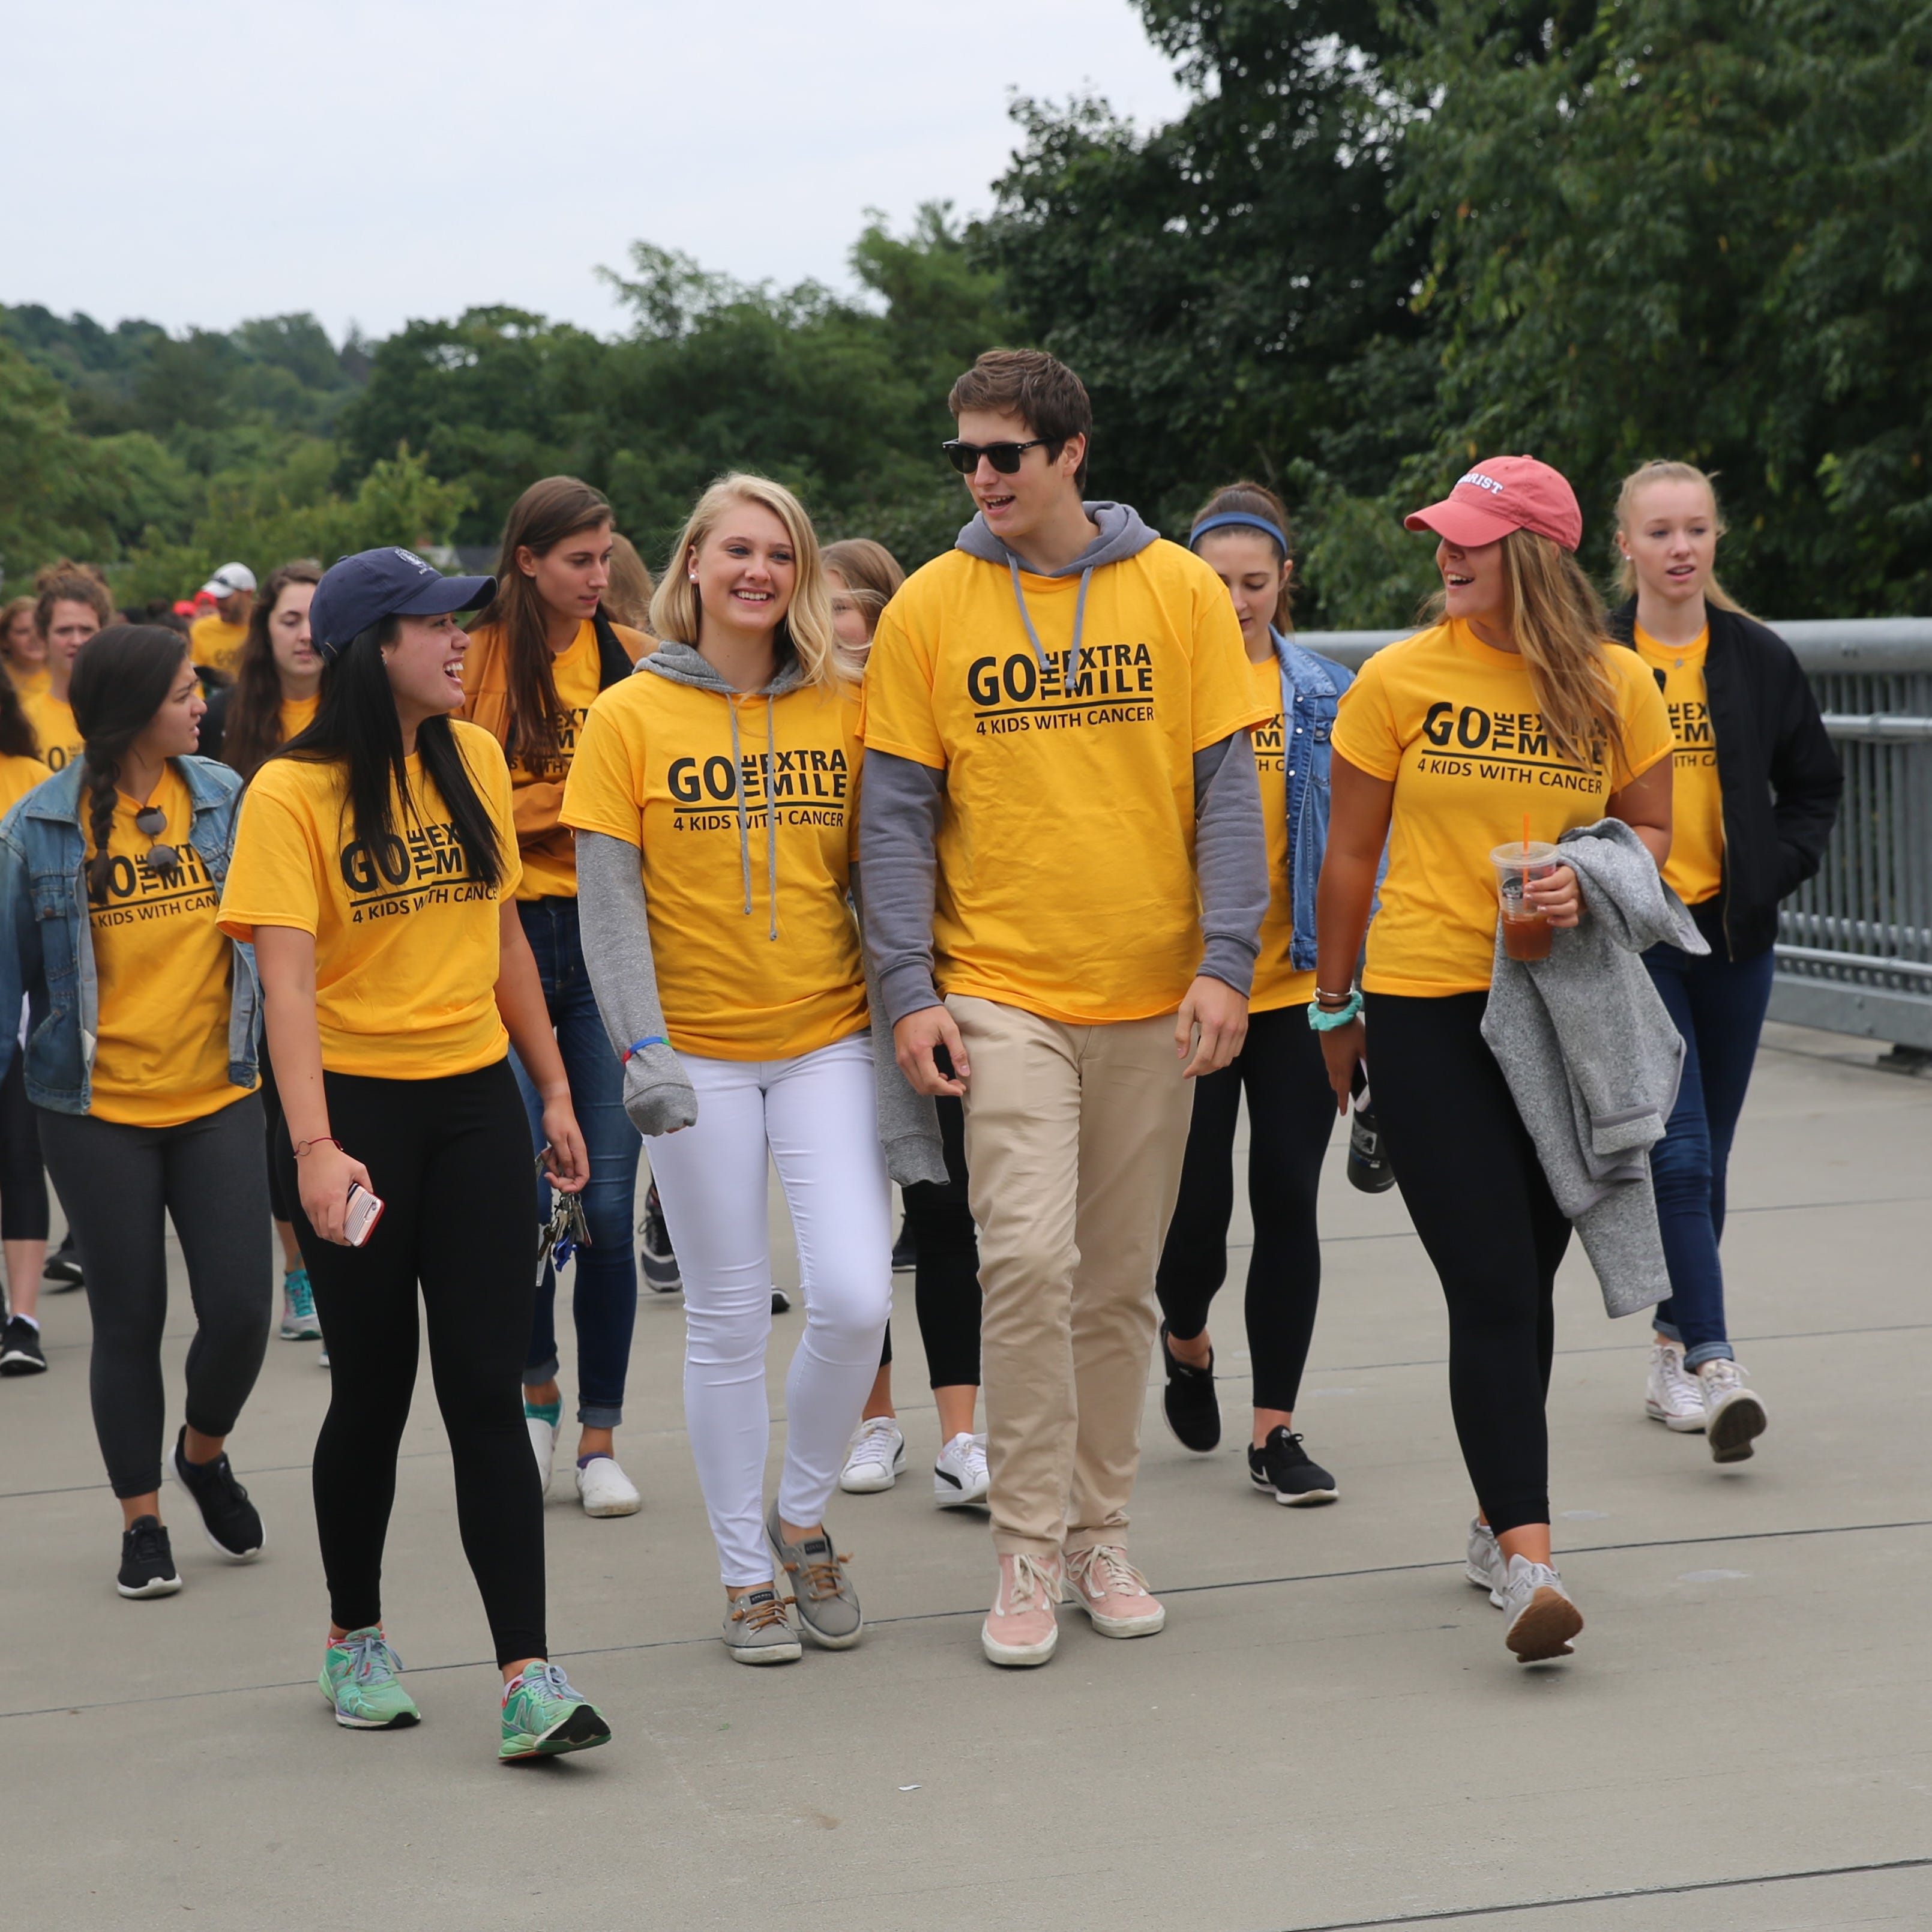 Marist students (from left to right) Kaela Brunetti, Morgan Zuch, her boyfriend, Tom Nalis, and Sara Barker lead the hundreds participating in the inaugural Morgan's Mile walk. Morgan, a childhood cancer survivor, volunteers at The Morgan Center the preschool for kids with cancer that her mother started in her honor.